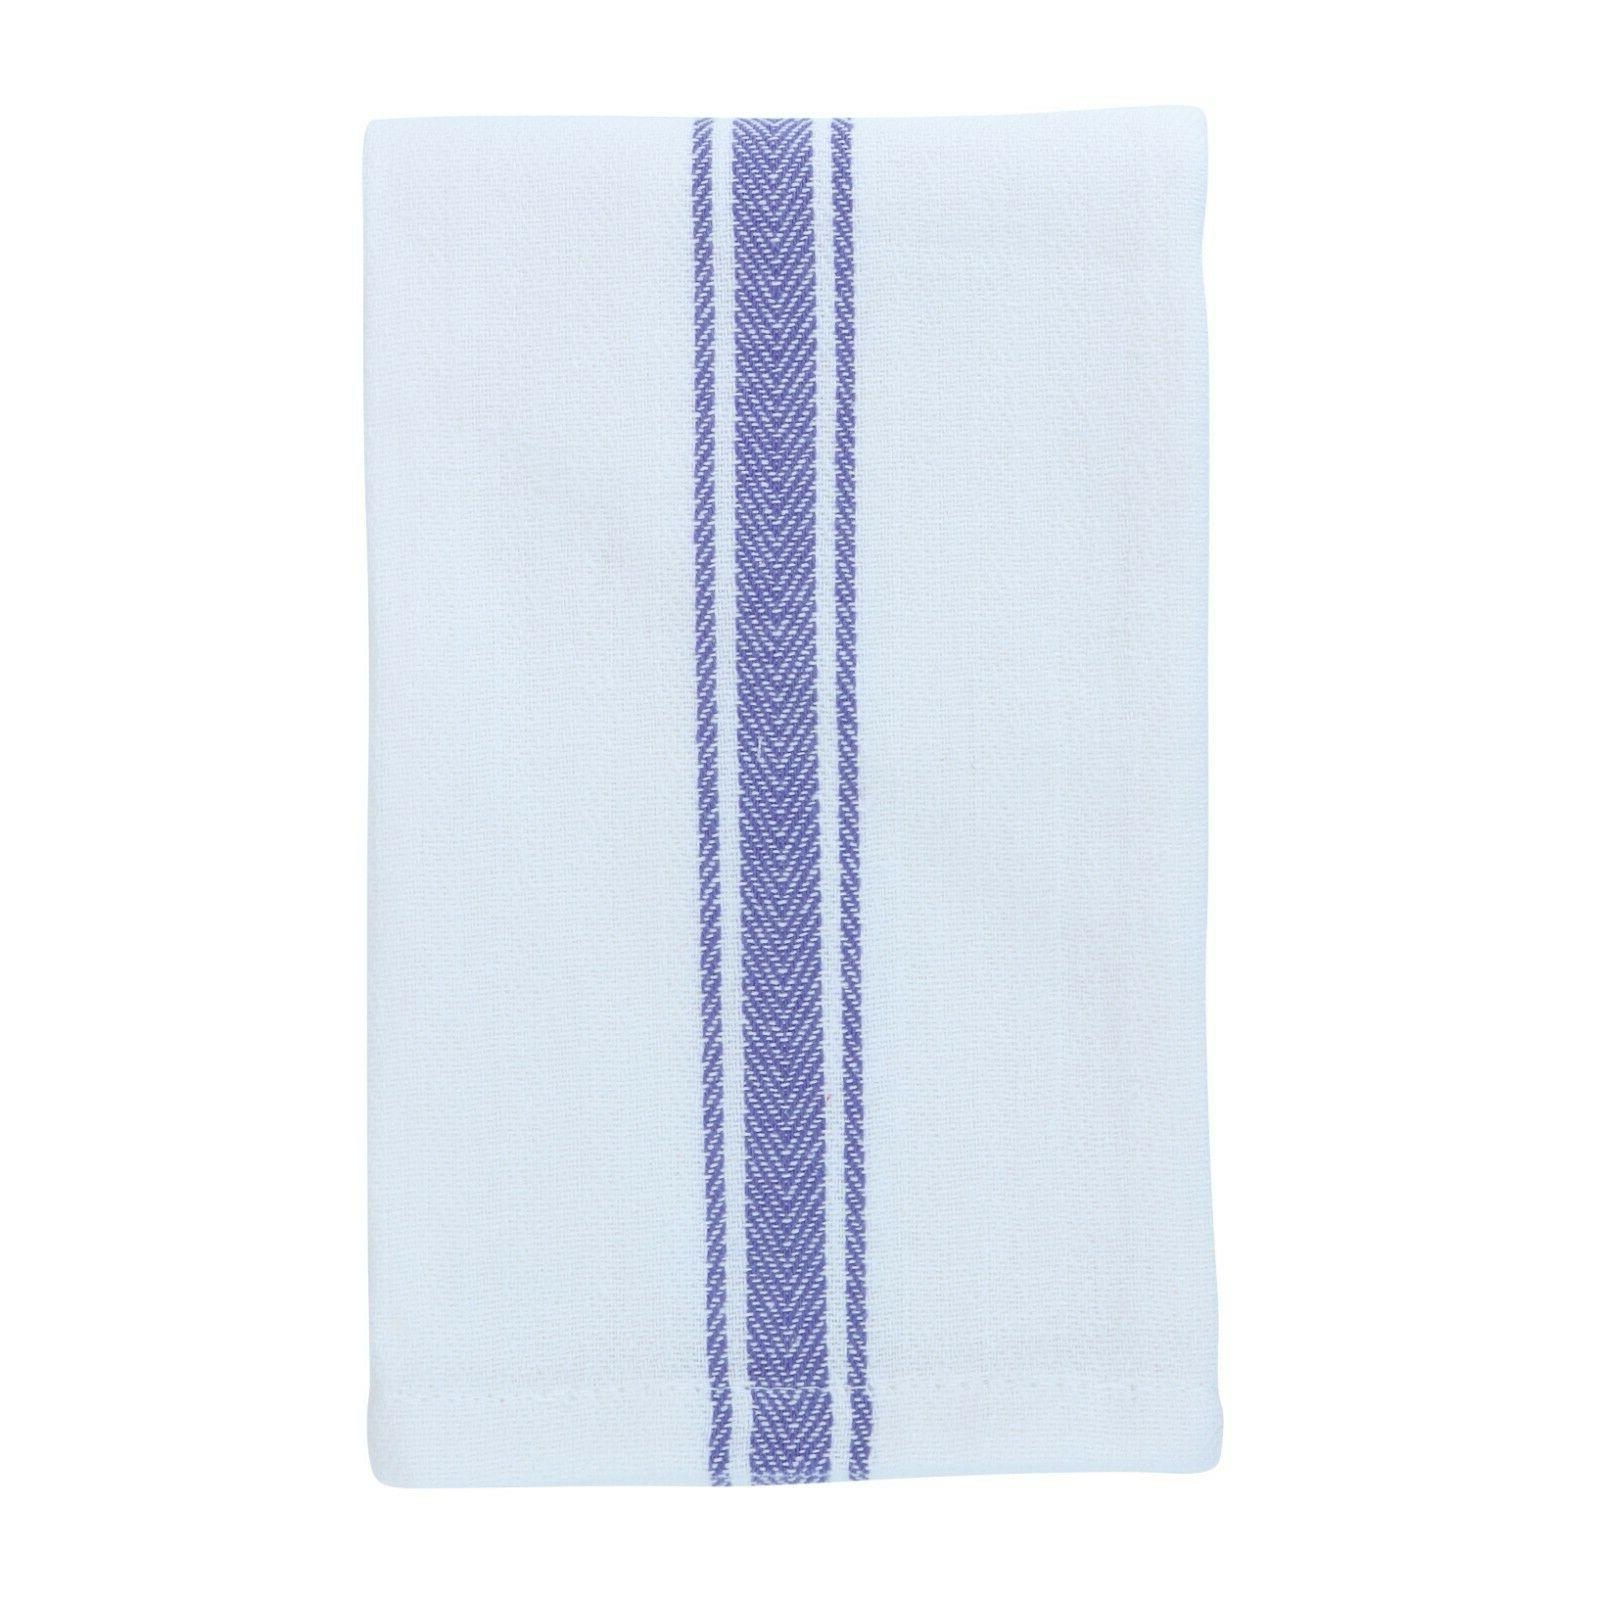 12 Striped Kitchen Tea - Dish Towels - 15 x 25 in Color Options